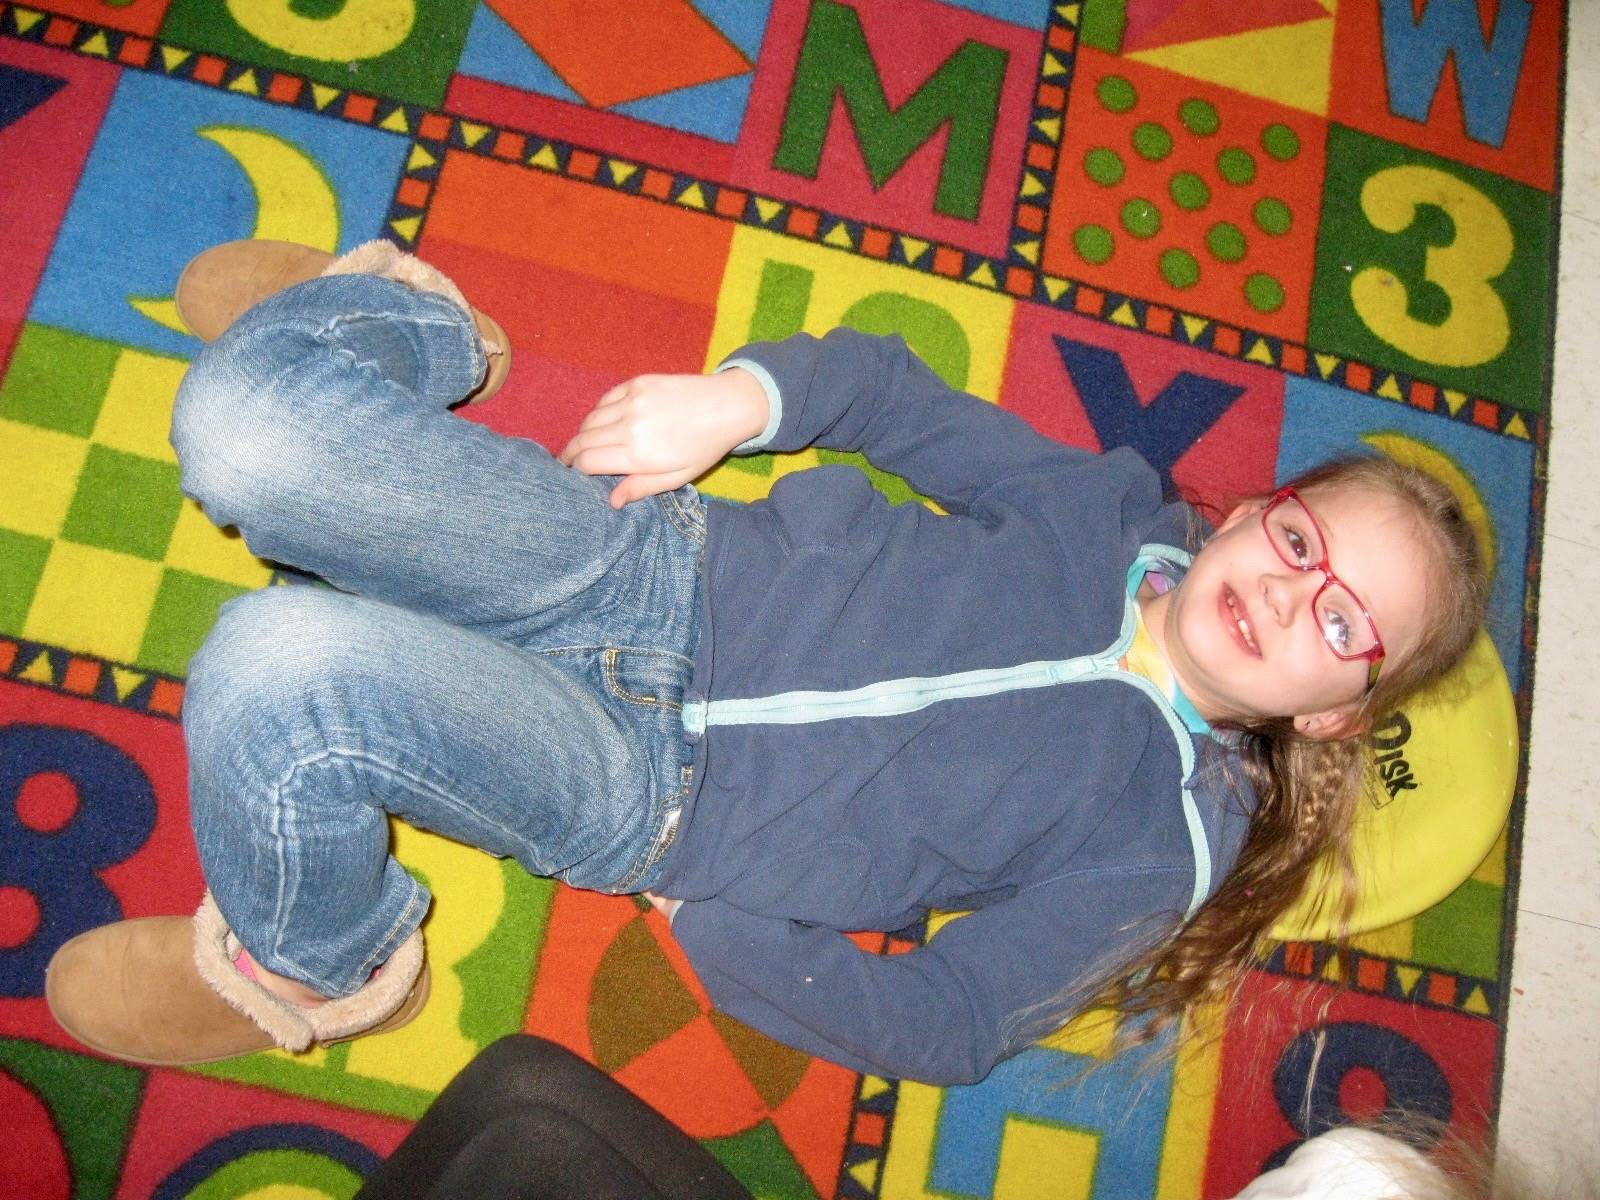 A student on the floor.